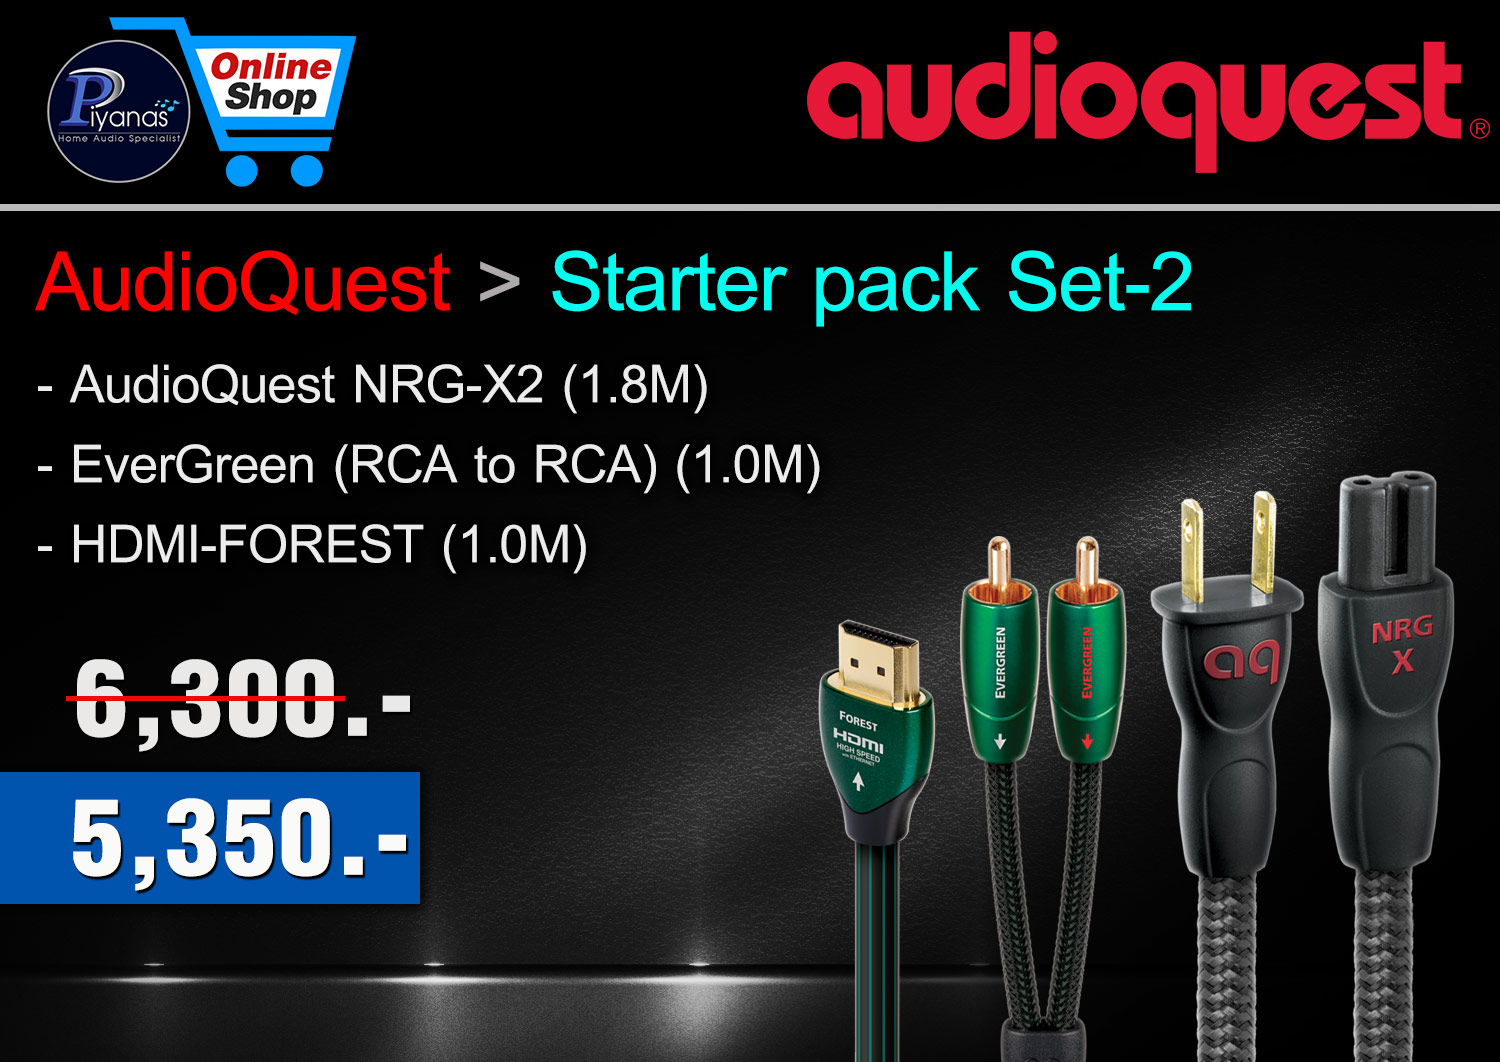 AudioQuest Starter pack set 2